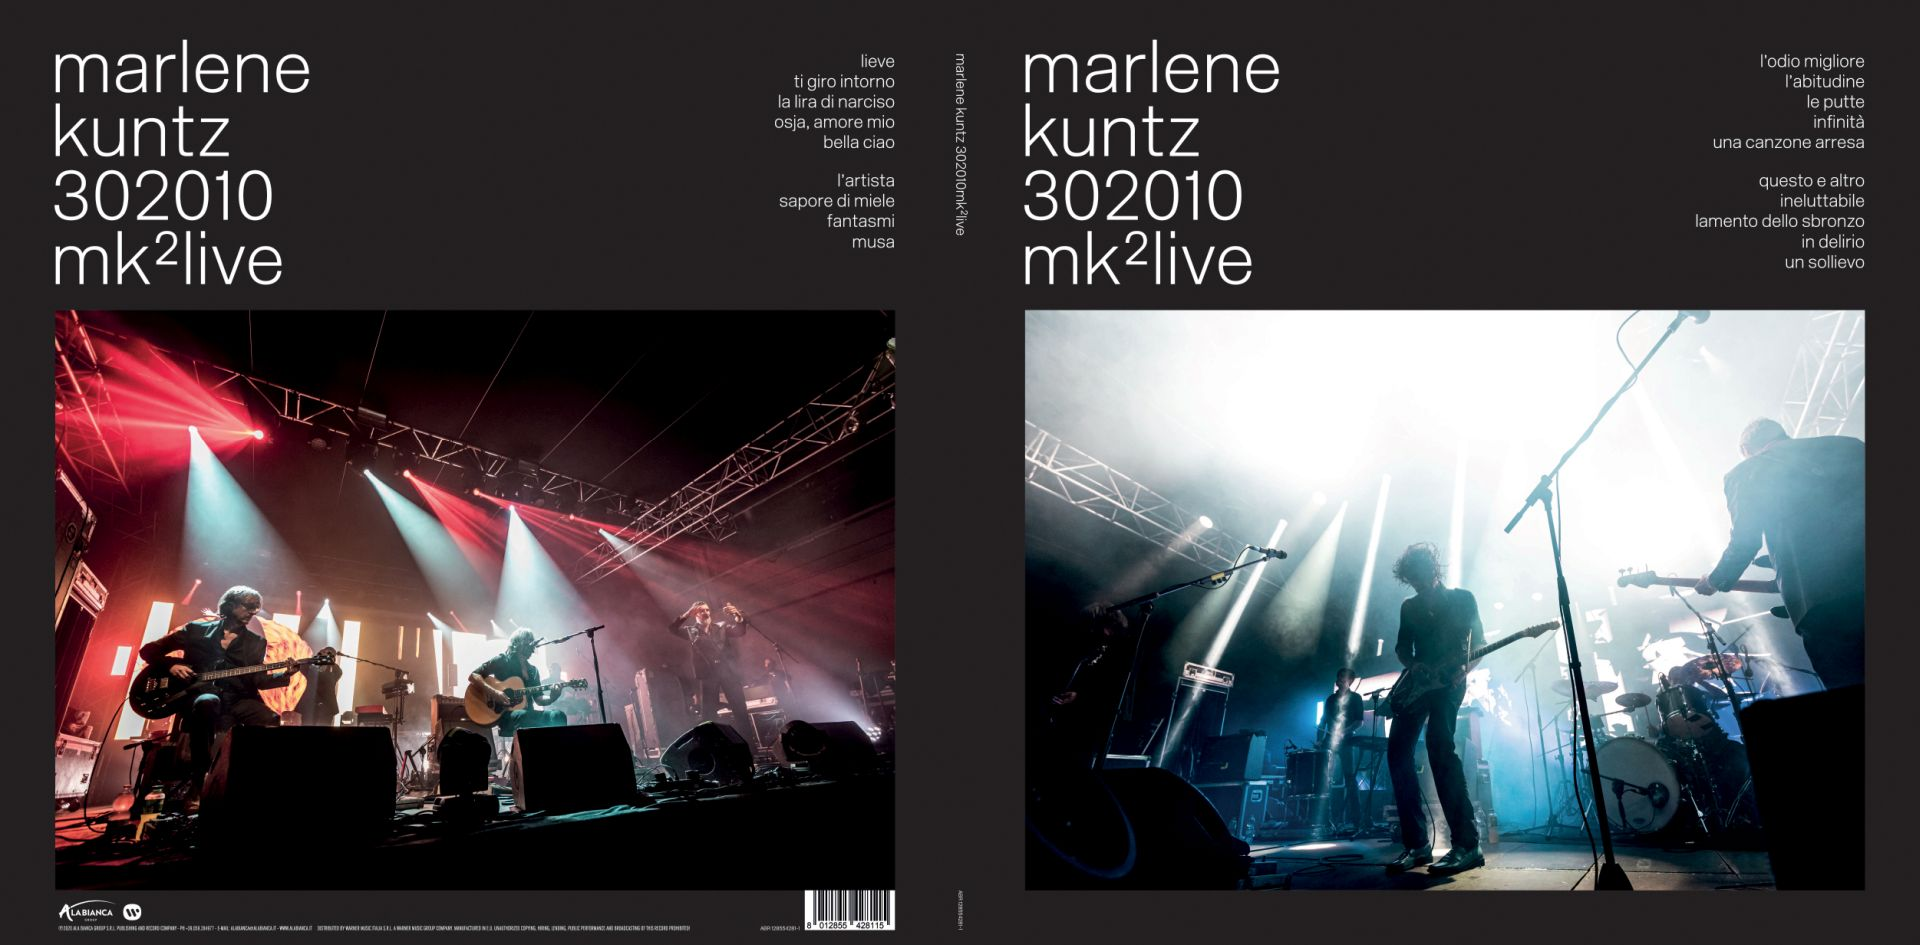 Cover album Marlene Kuntz